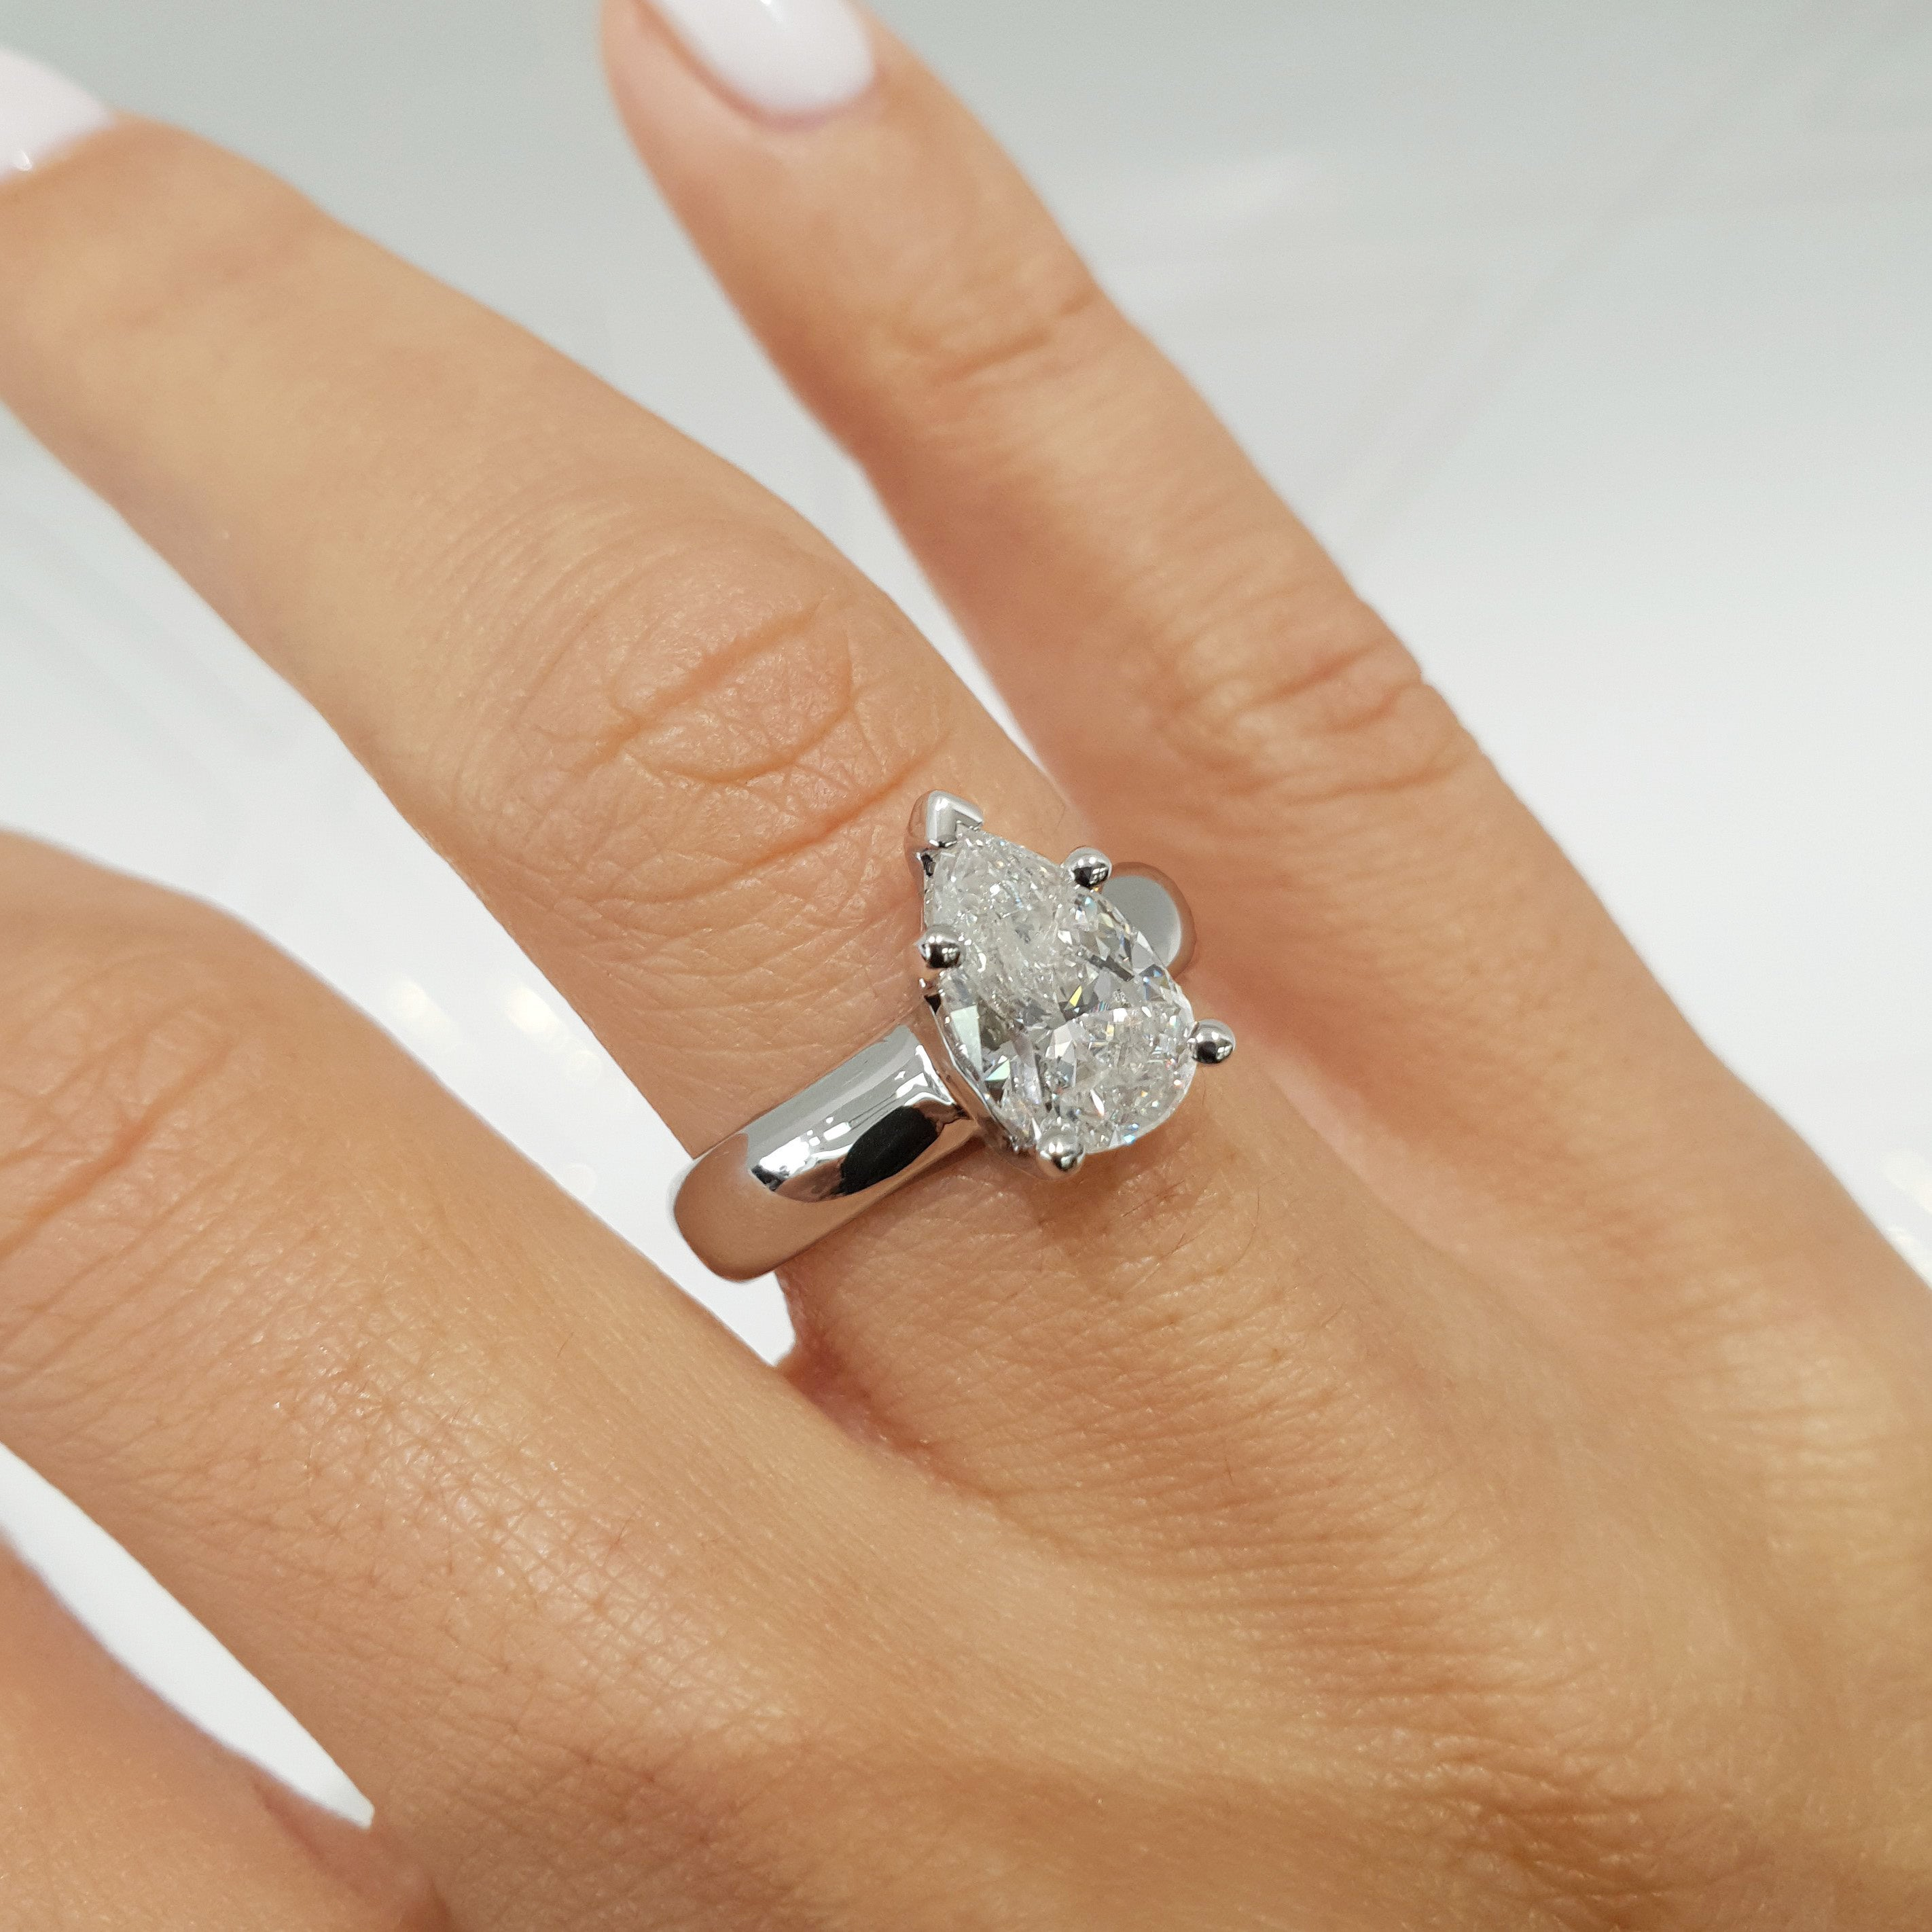 The Hannah Engagement Ring - 1.5 Carat Pear F SI1 - 14K White Gold Diamond Ring #J99175